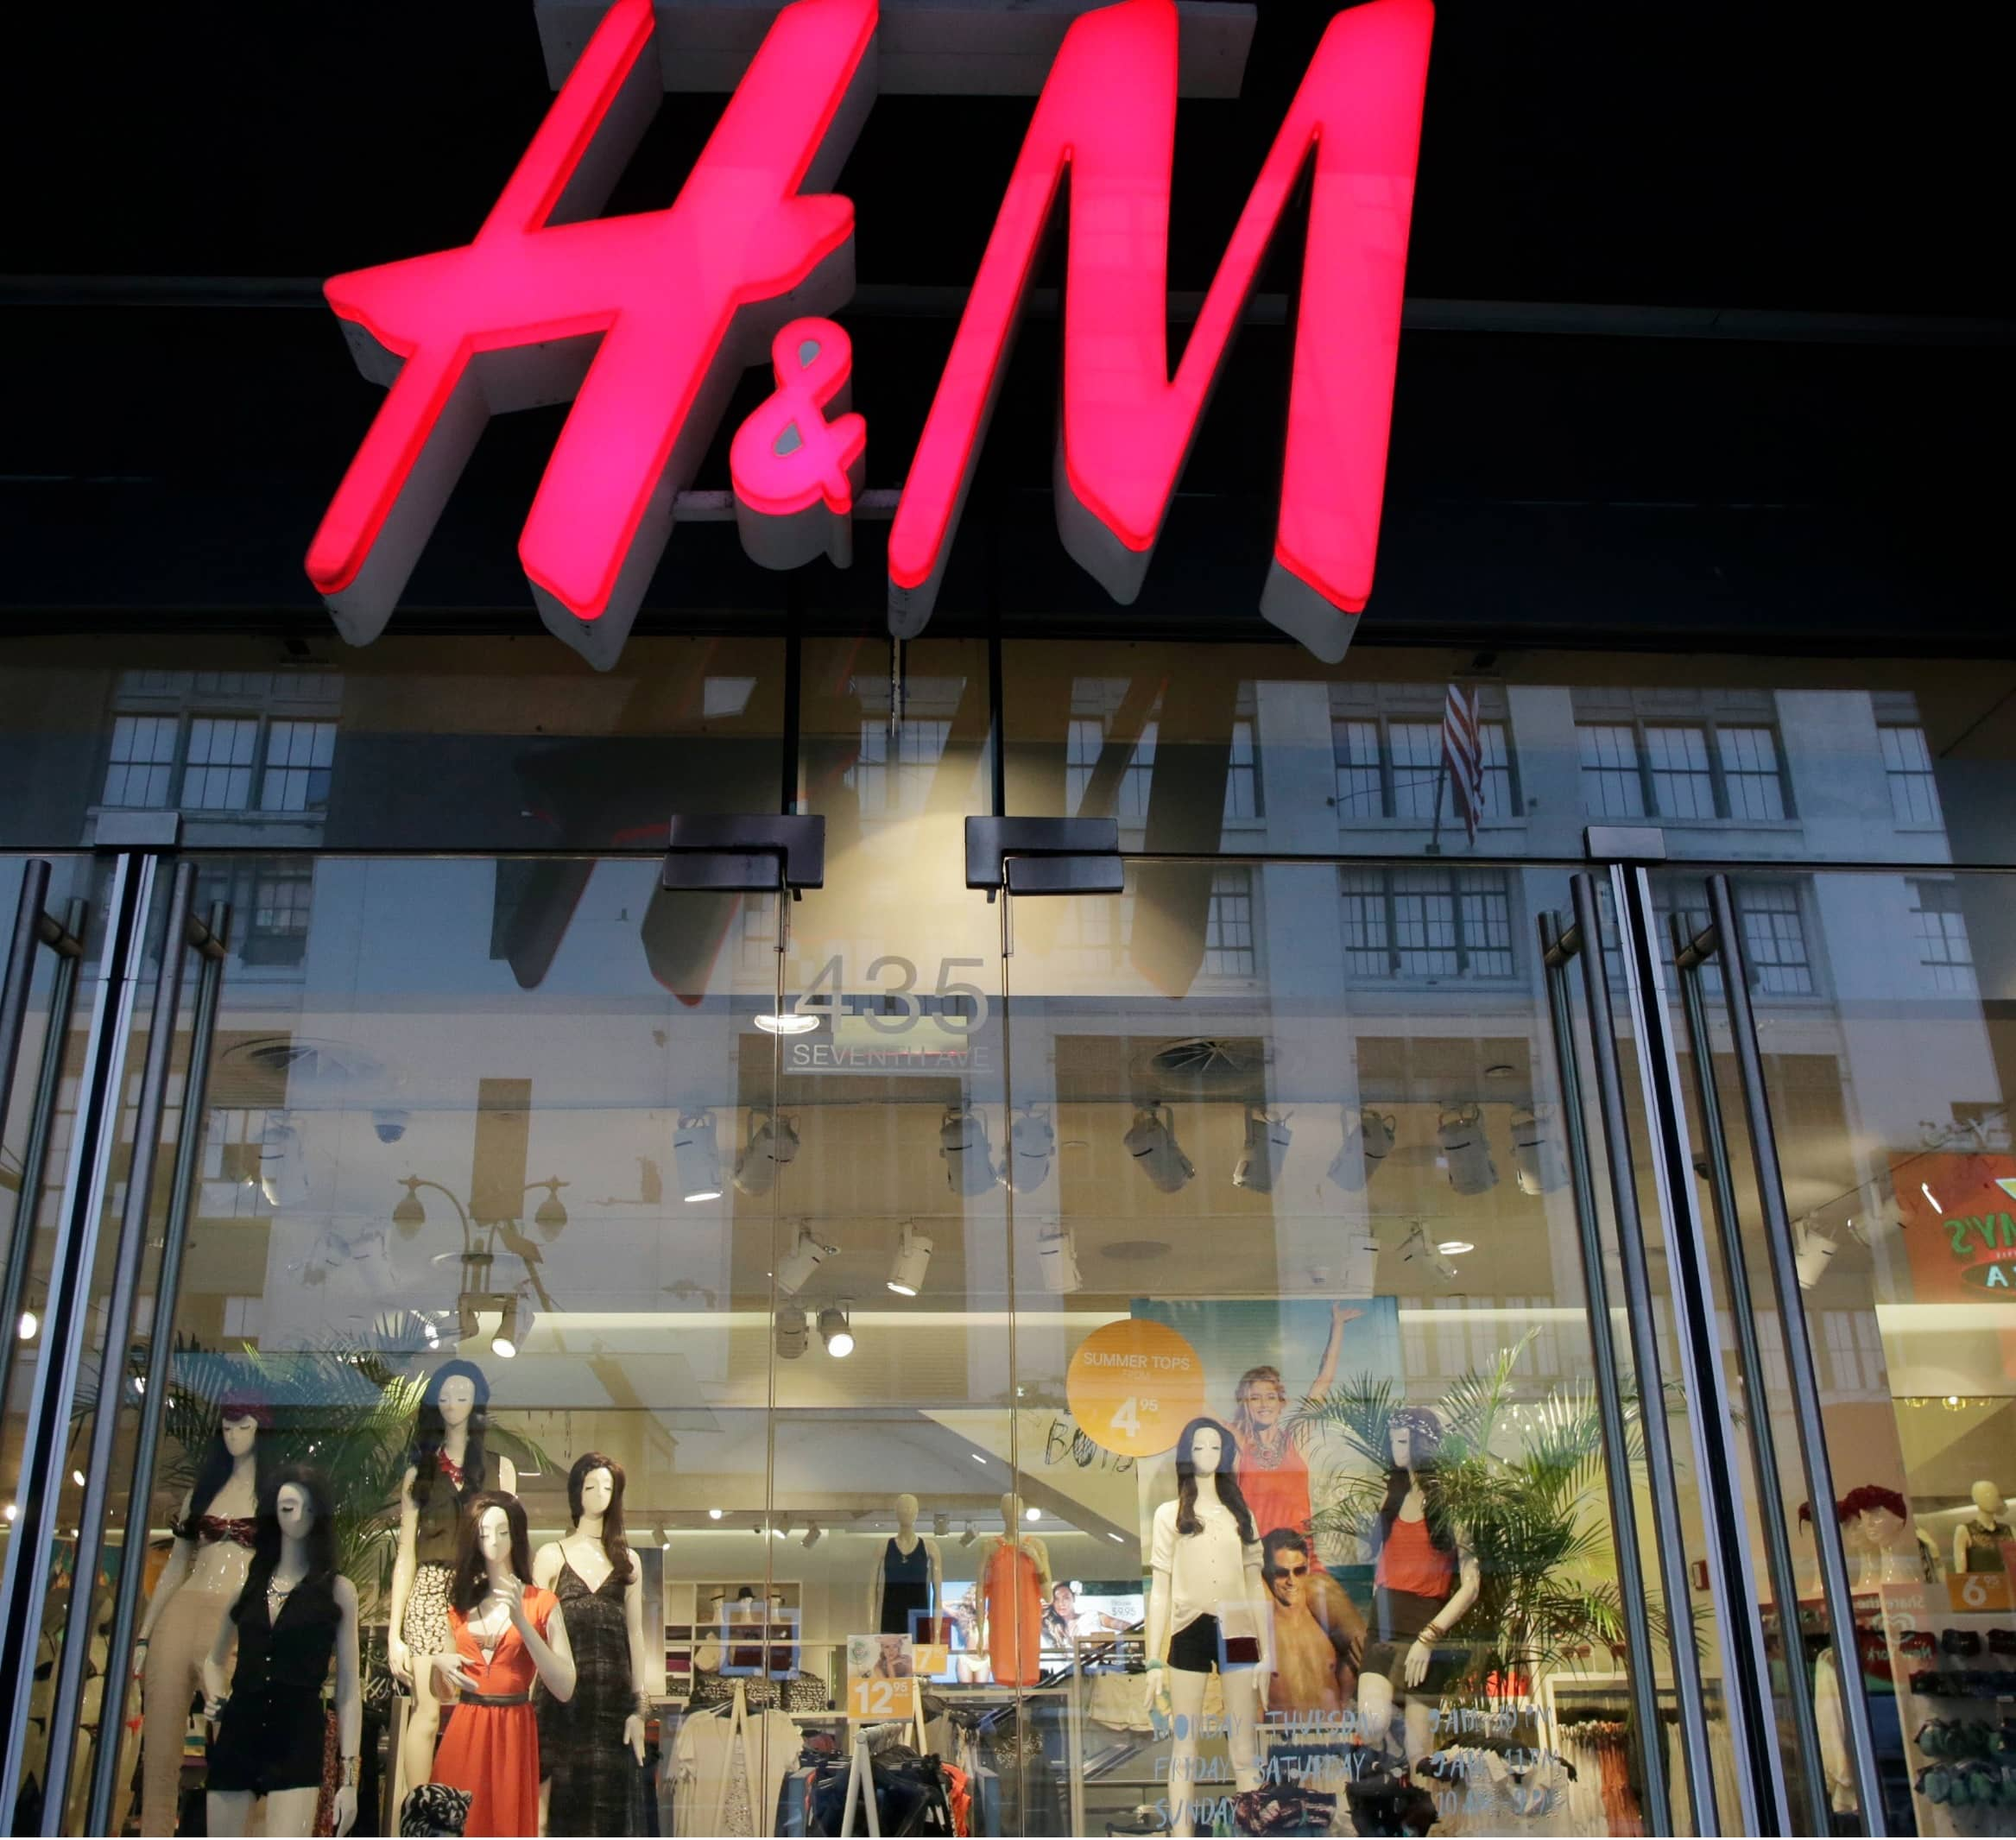 German Privacy Watchdog Fines H&M $41M For Spying On Workers